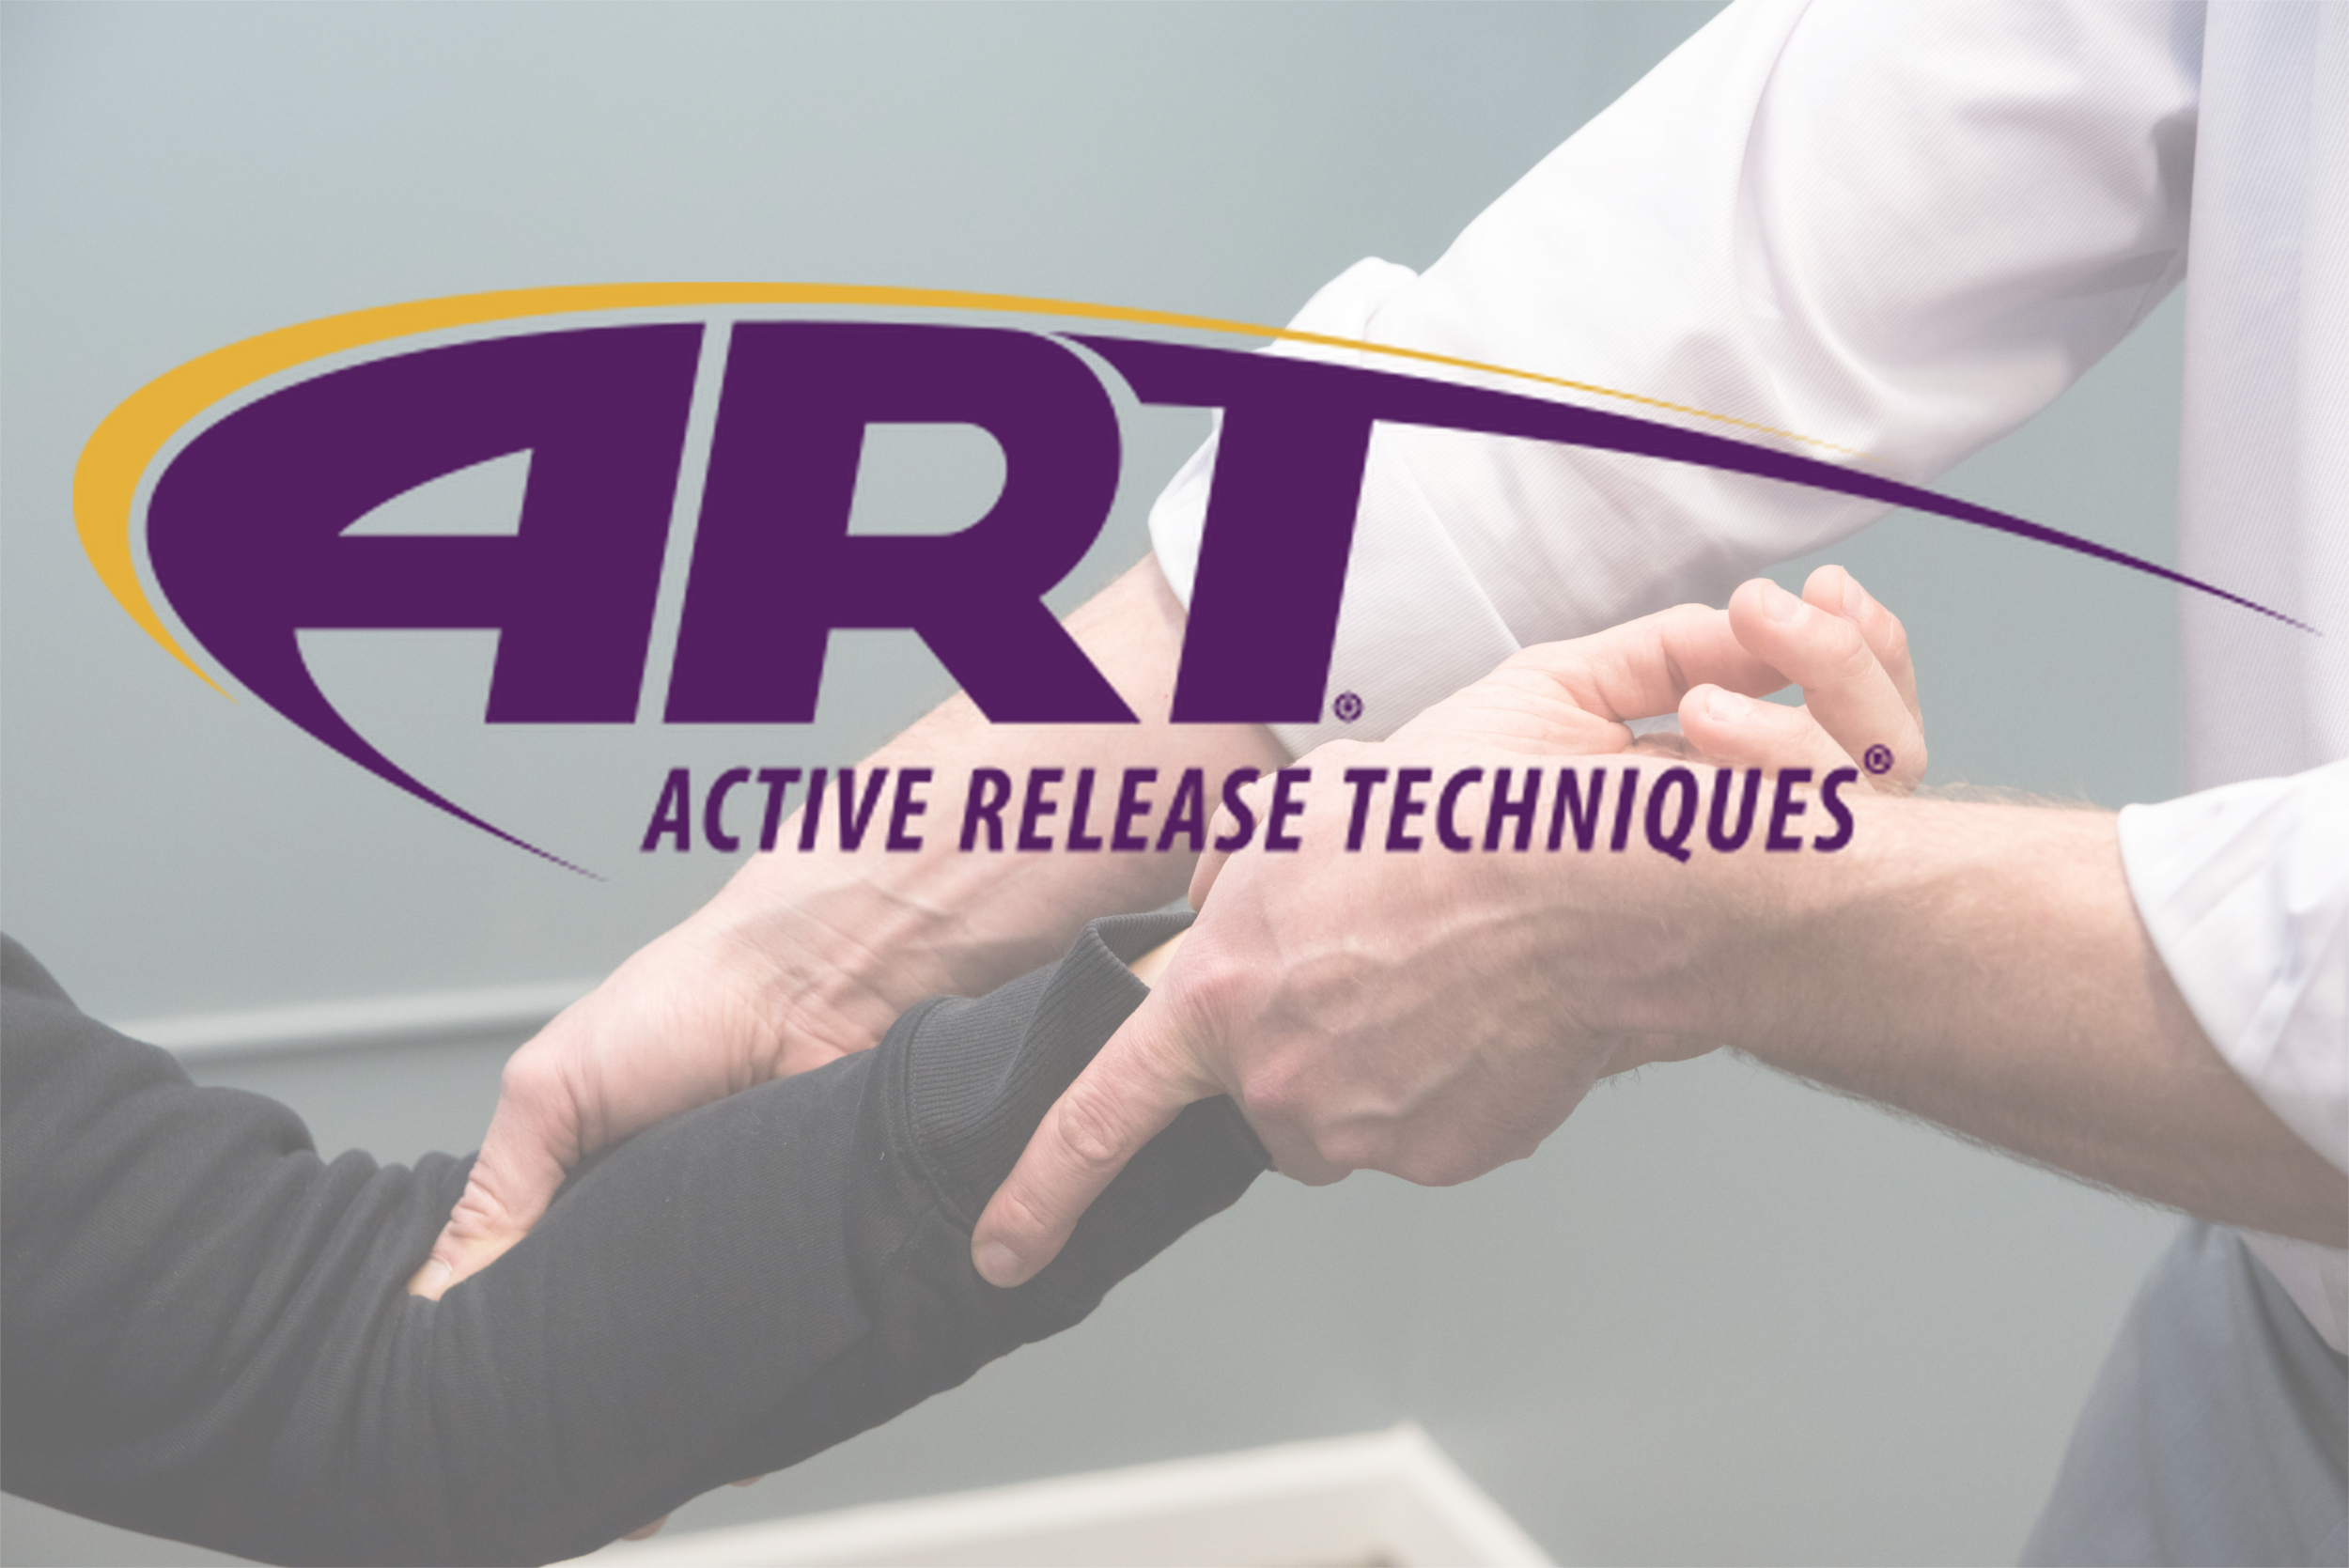 Active Release Techniques in saratoga springs